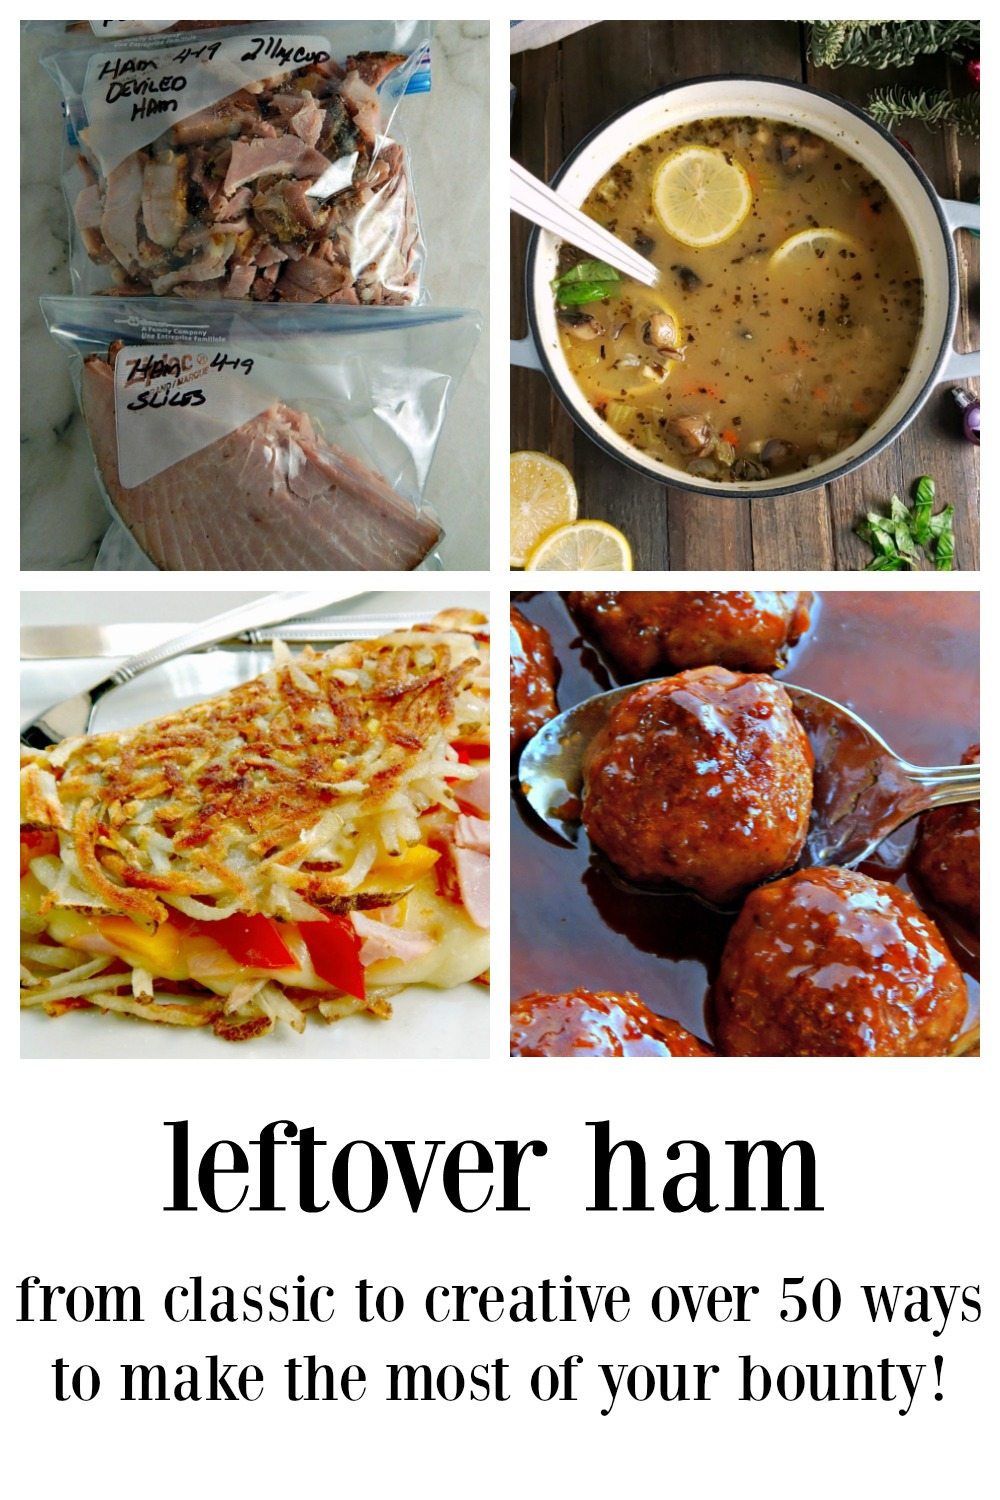 12 Days of Ham - Leftover Ham Recipes. 45 ways to maximize & refashion that leftover ham, each better than the original ham! Because we all need a little inspiration now and then! NO Slideshows!! #LeftoverHam #HamRecipes #RecipesLeftoverHam